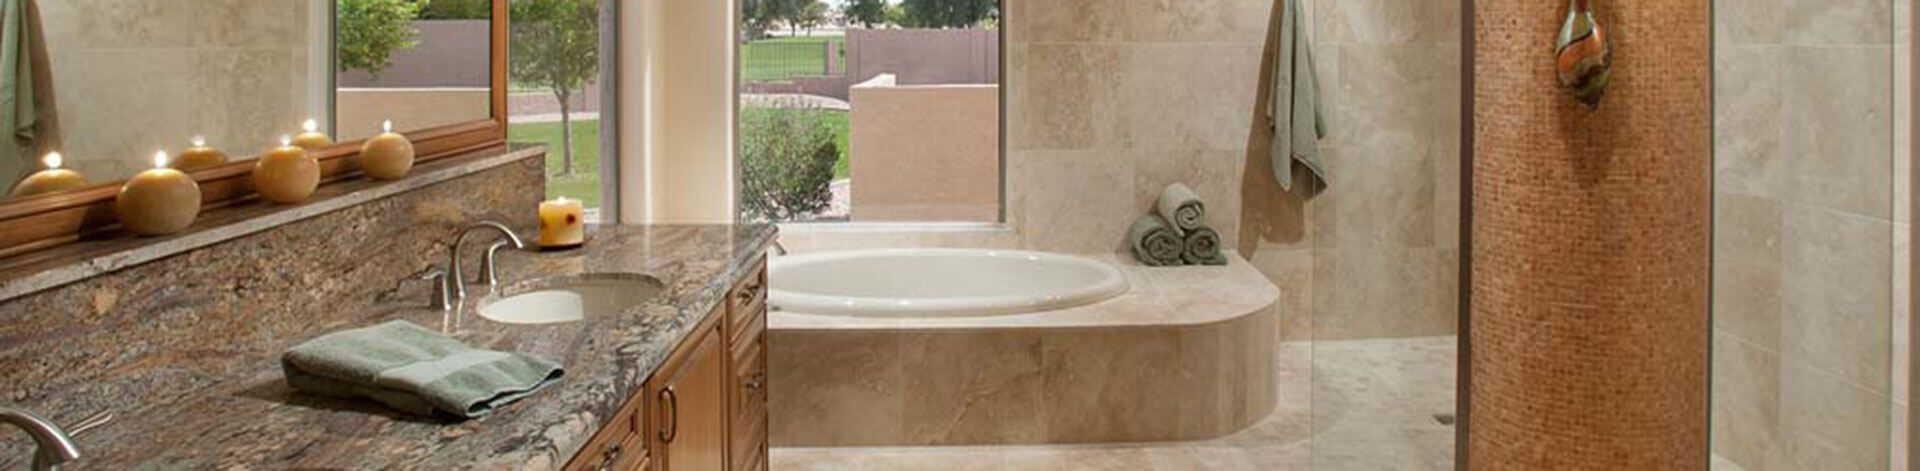 Phoenix Bathroom Remodel Bathroom Remodeling In Phoenix & Scottsdale  Republic West Remodeling